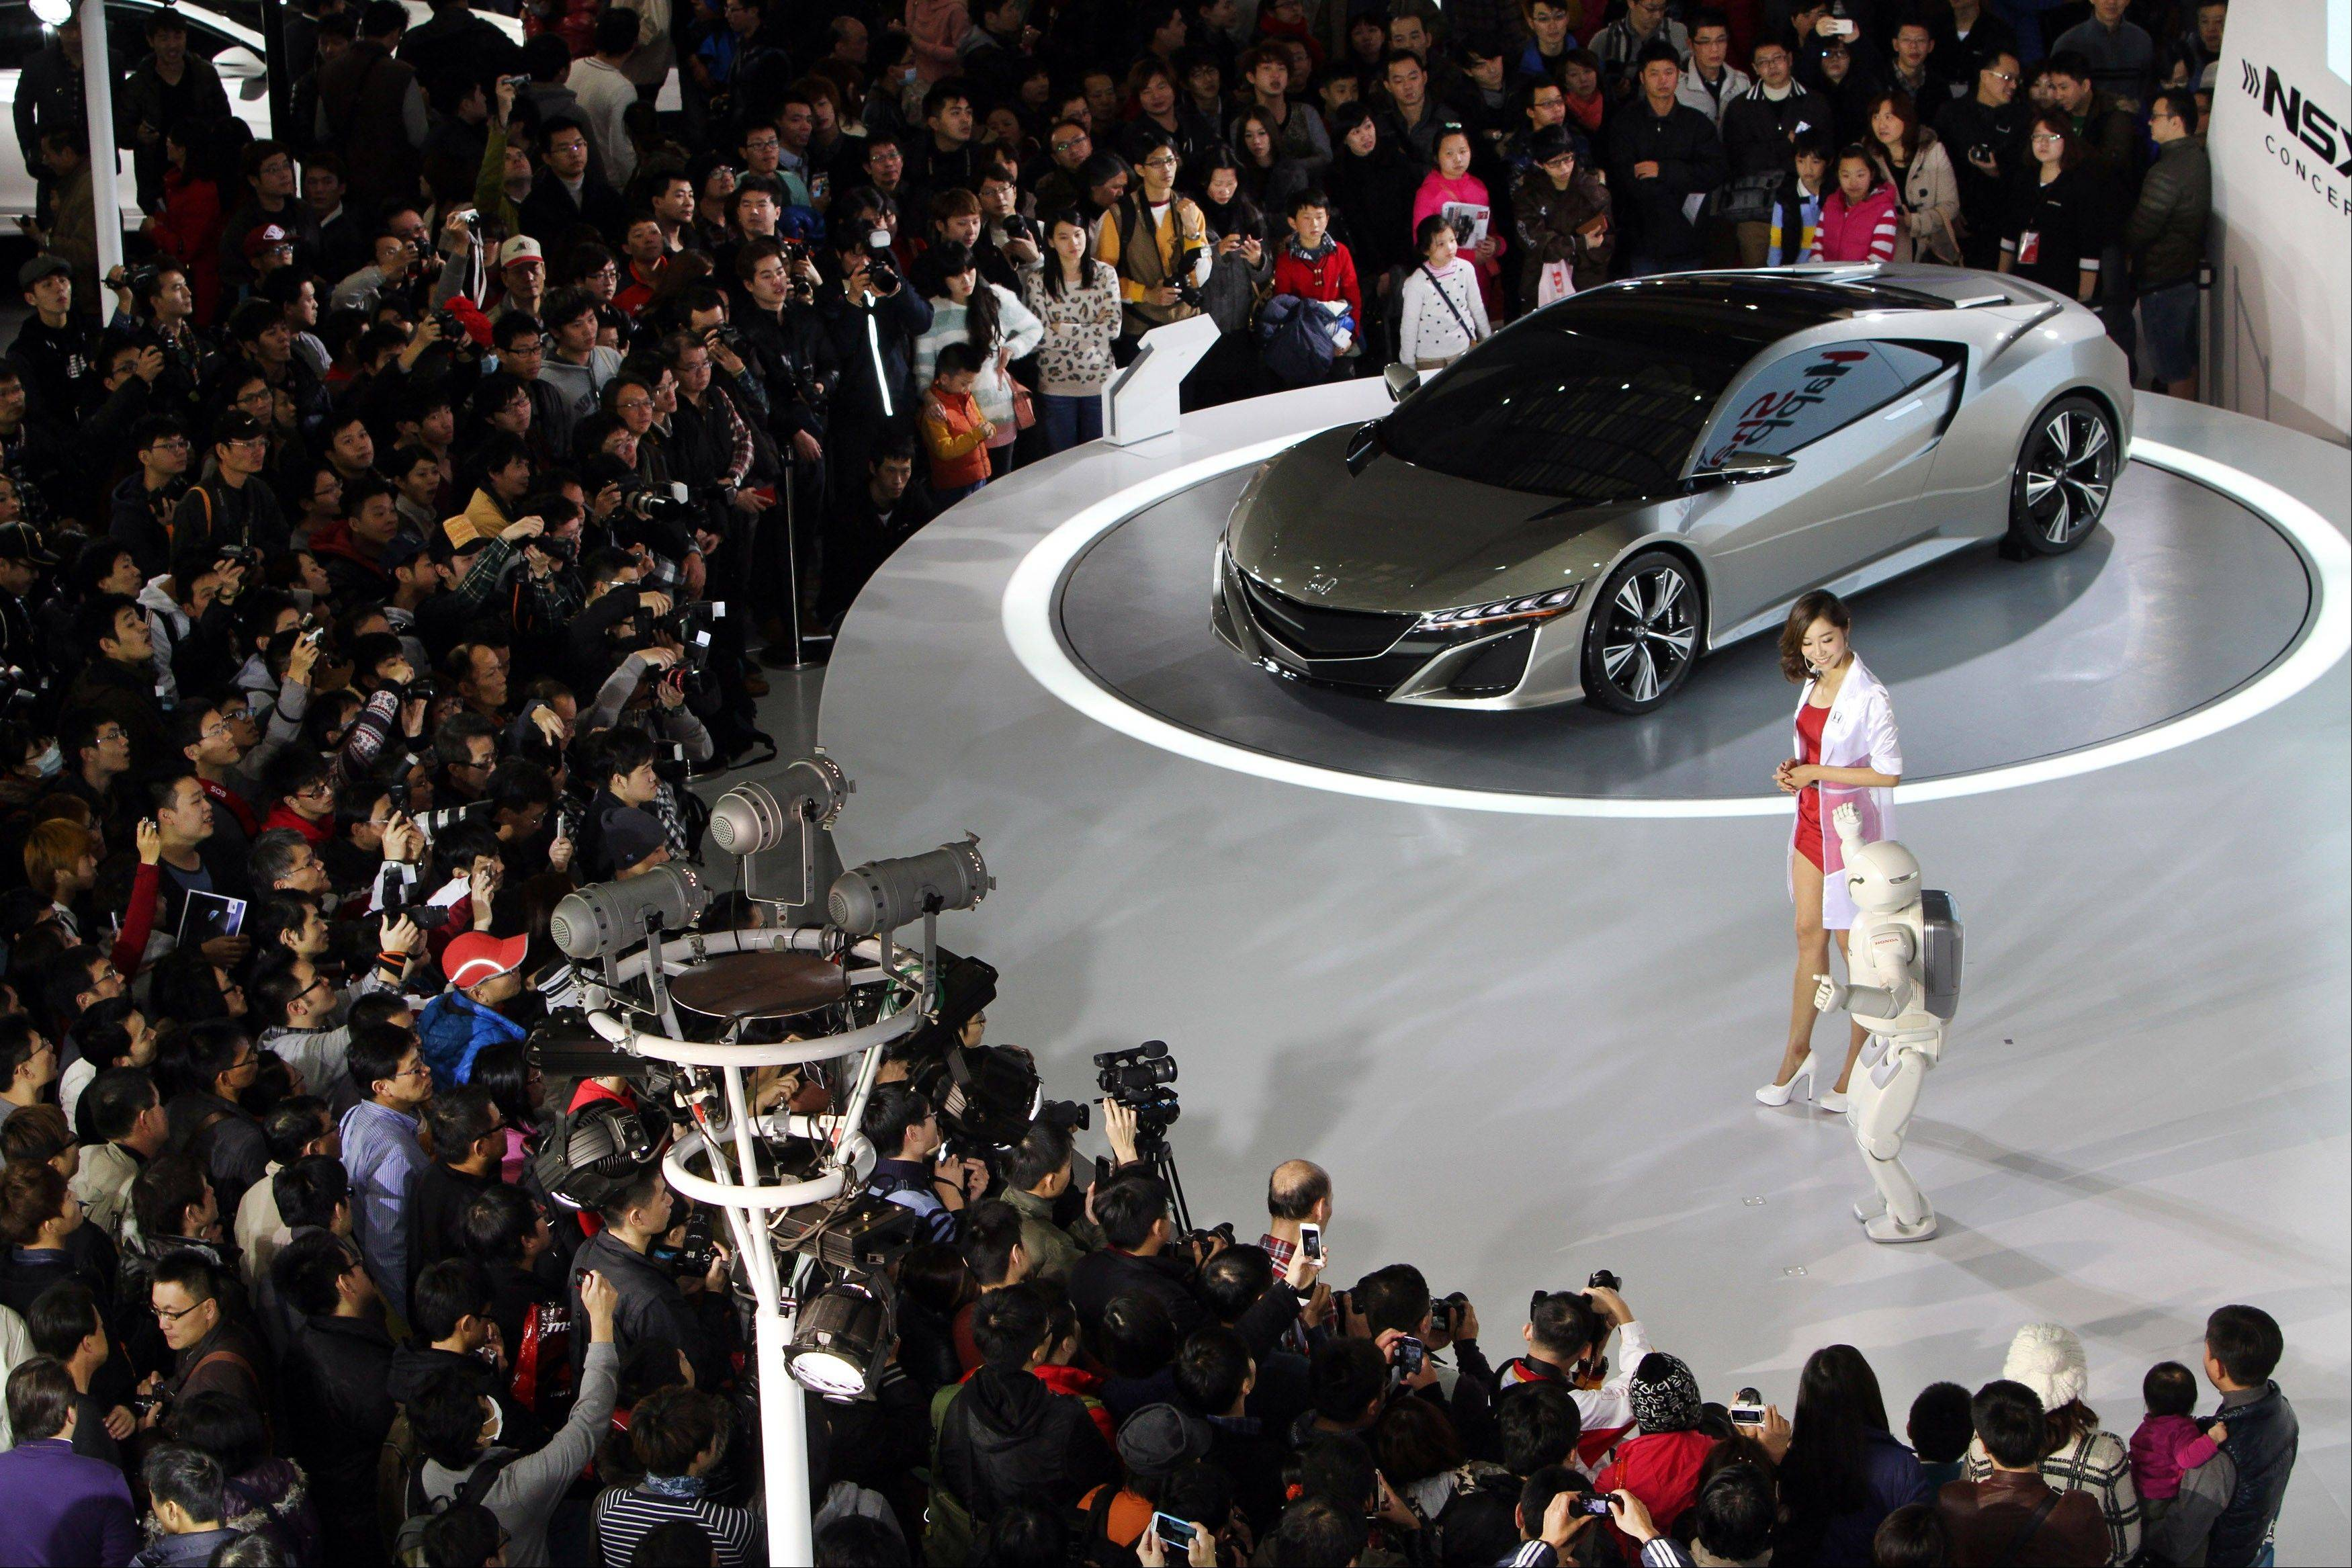 Visitors gather around Honda NSX Concept I on display during the Taipei International Auto Show Sunday at the Taipei World Trade Center in Taipei, Taiwan.